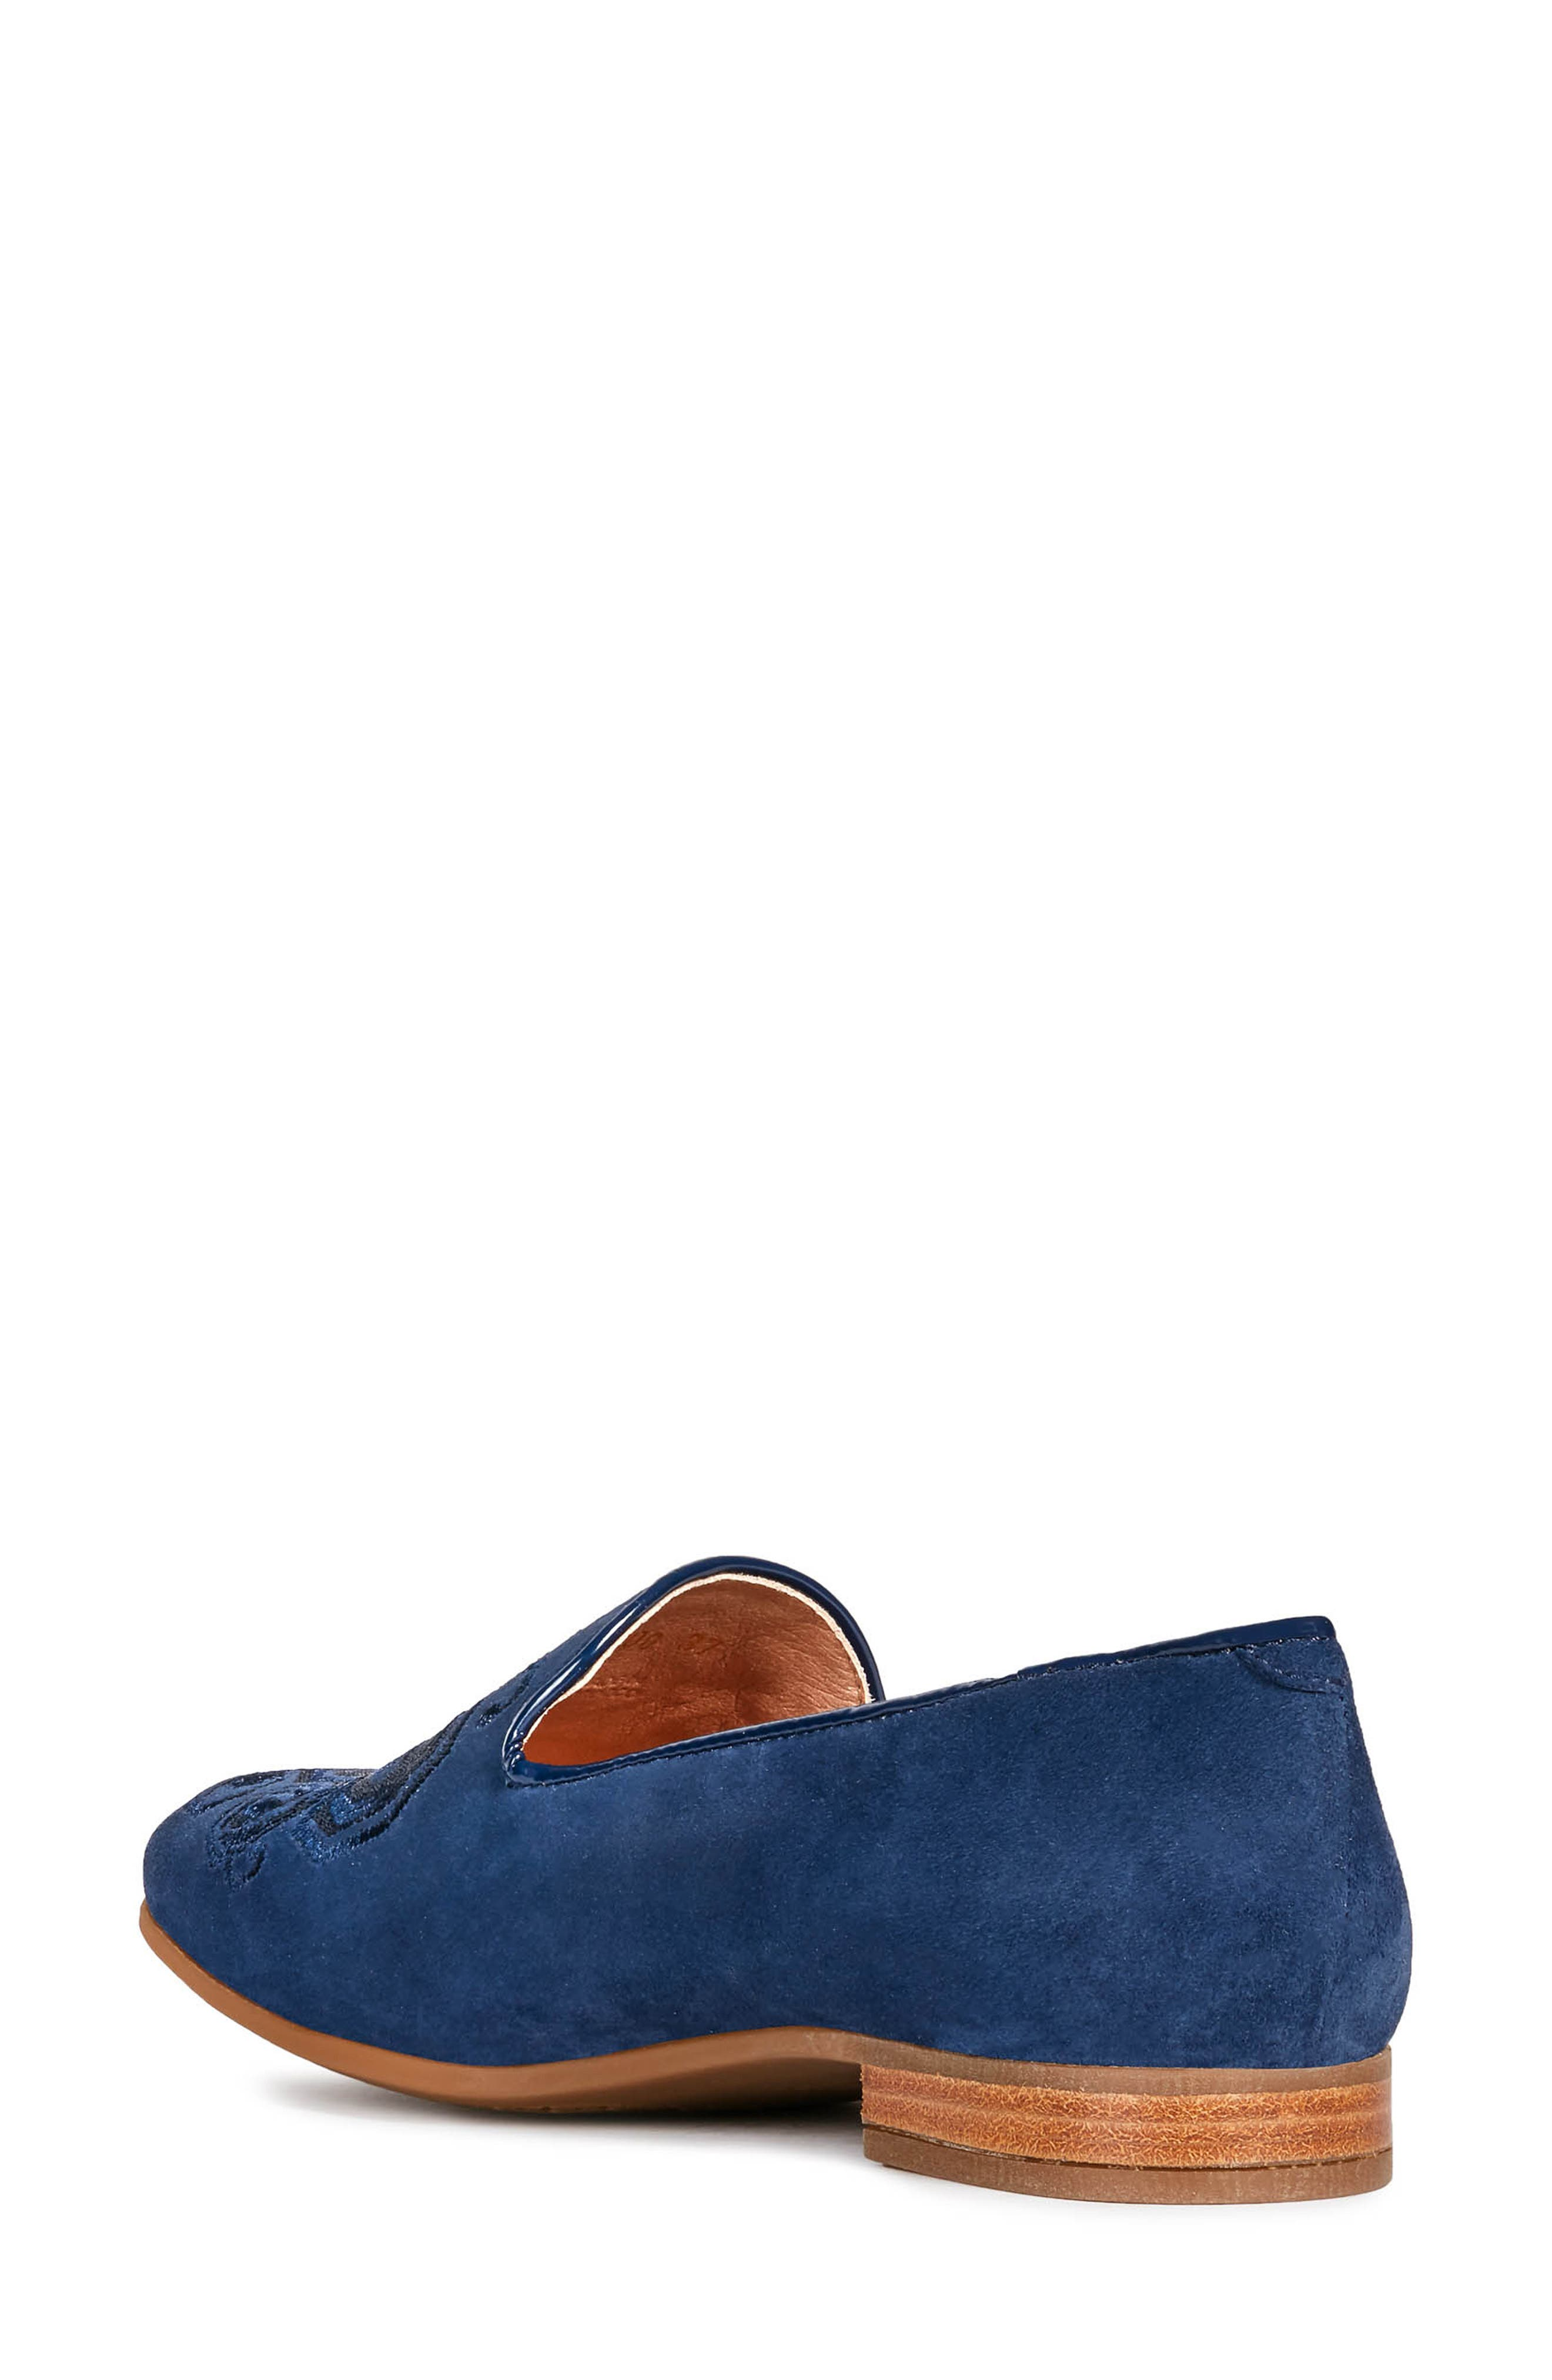 GEOX, Marlyna Loafer, Alternate thumbnail 7, color, BLUE SUEDE